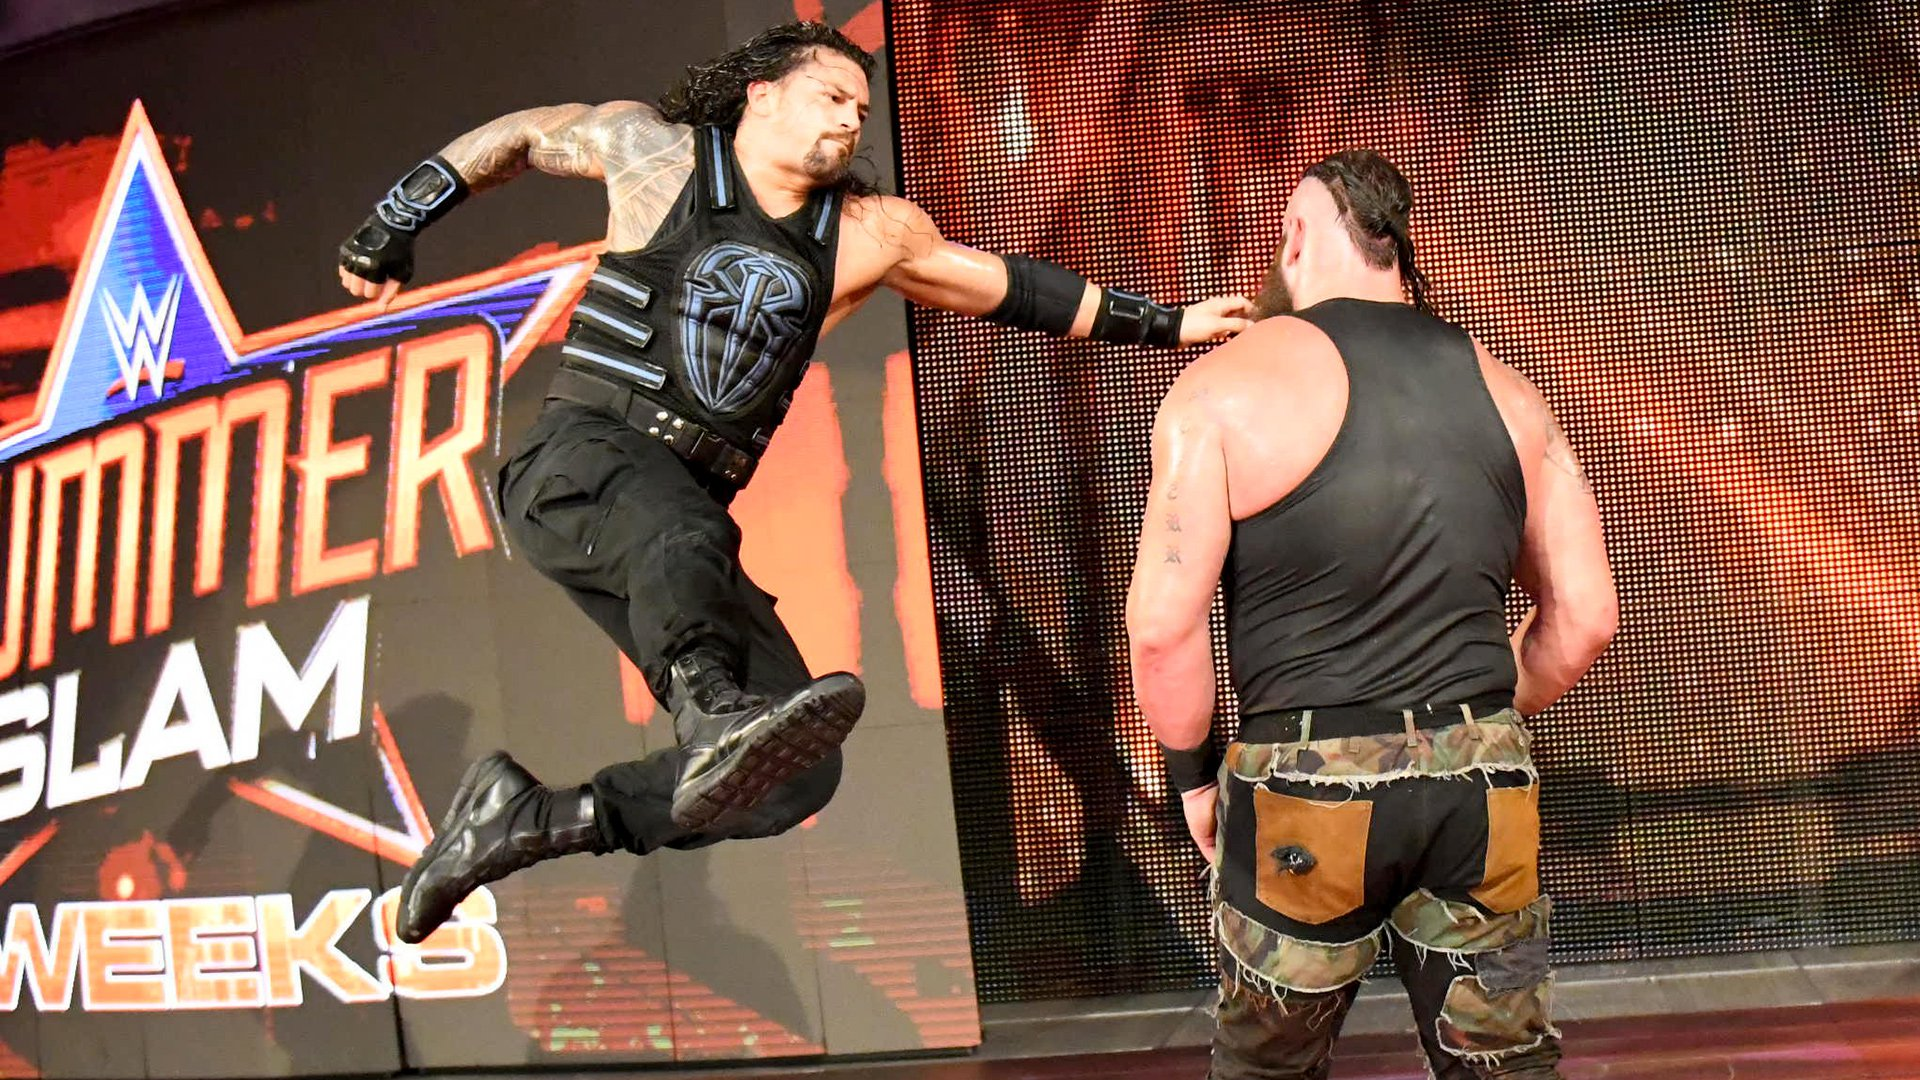 Reigns battles back with a Superman Punch...